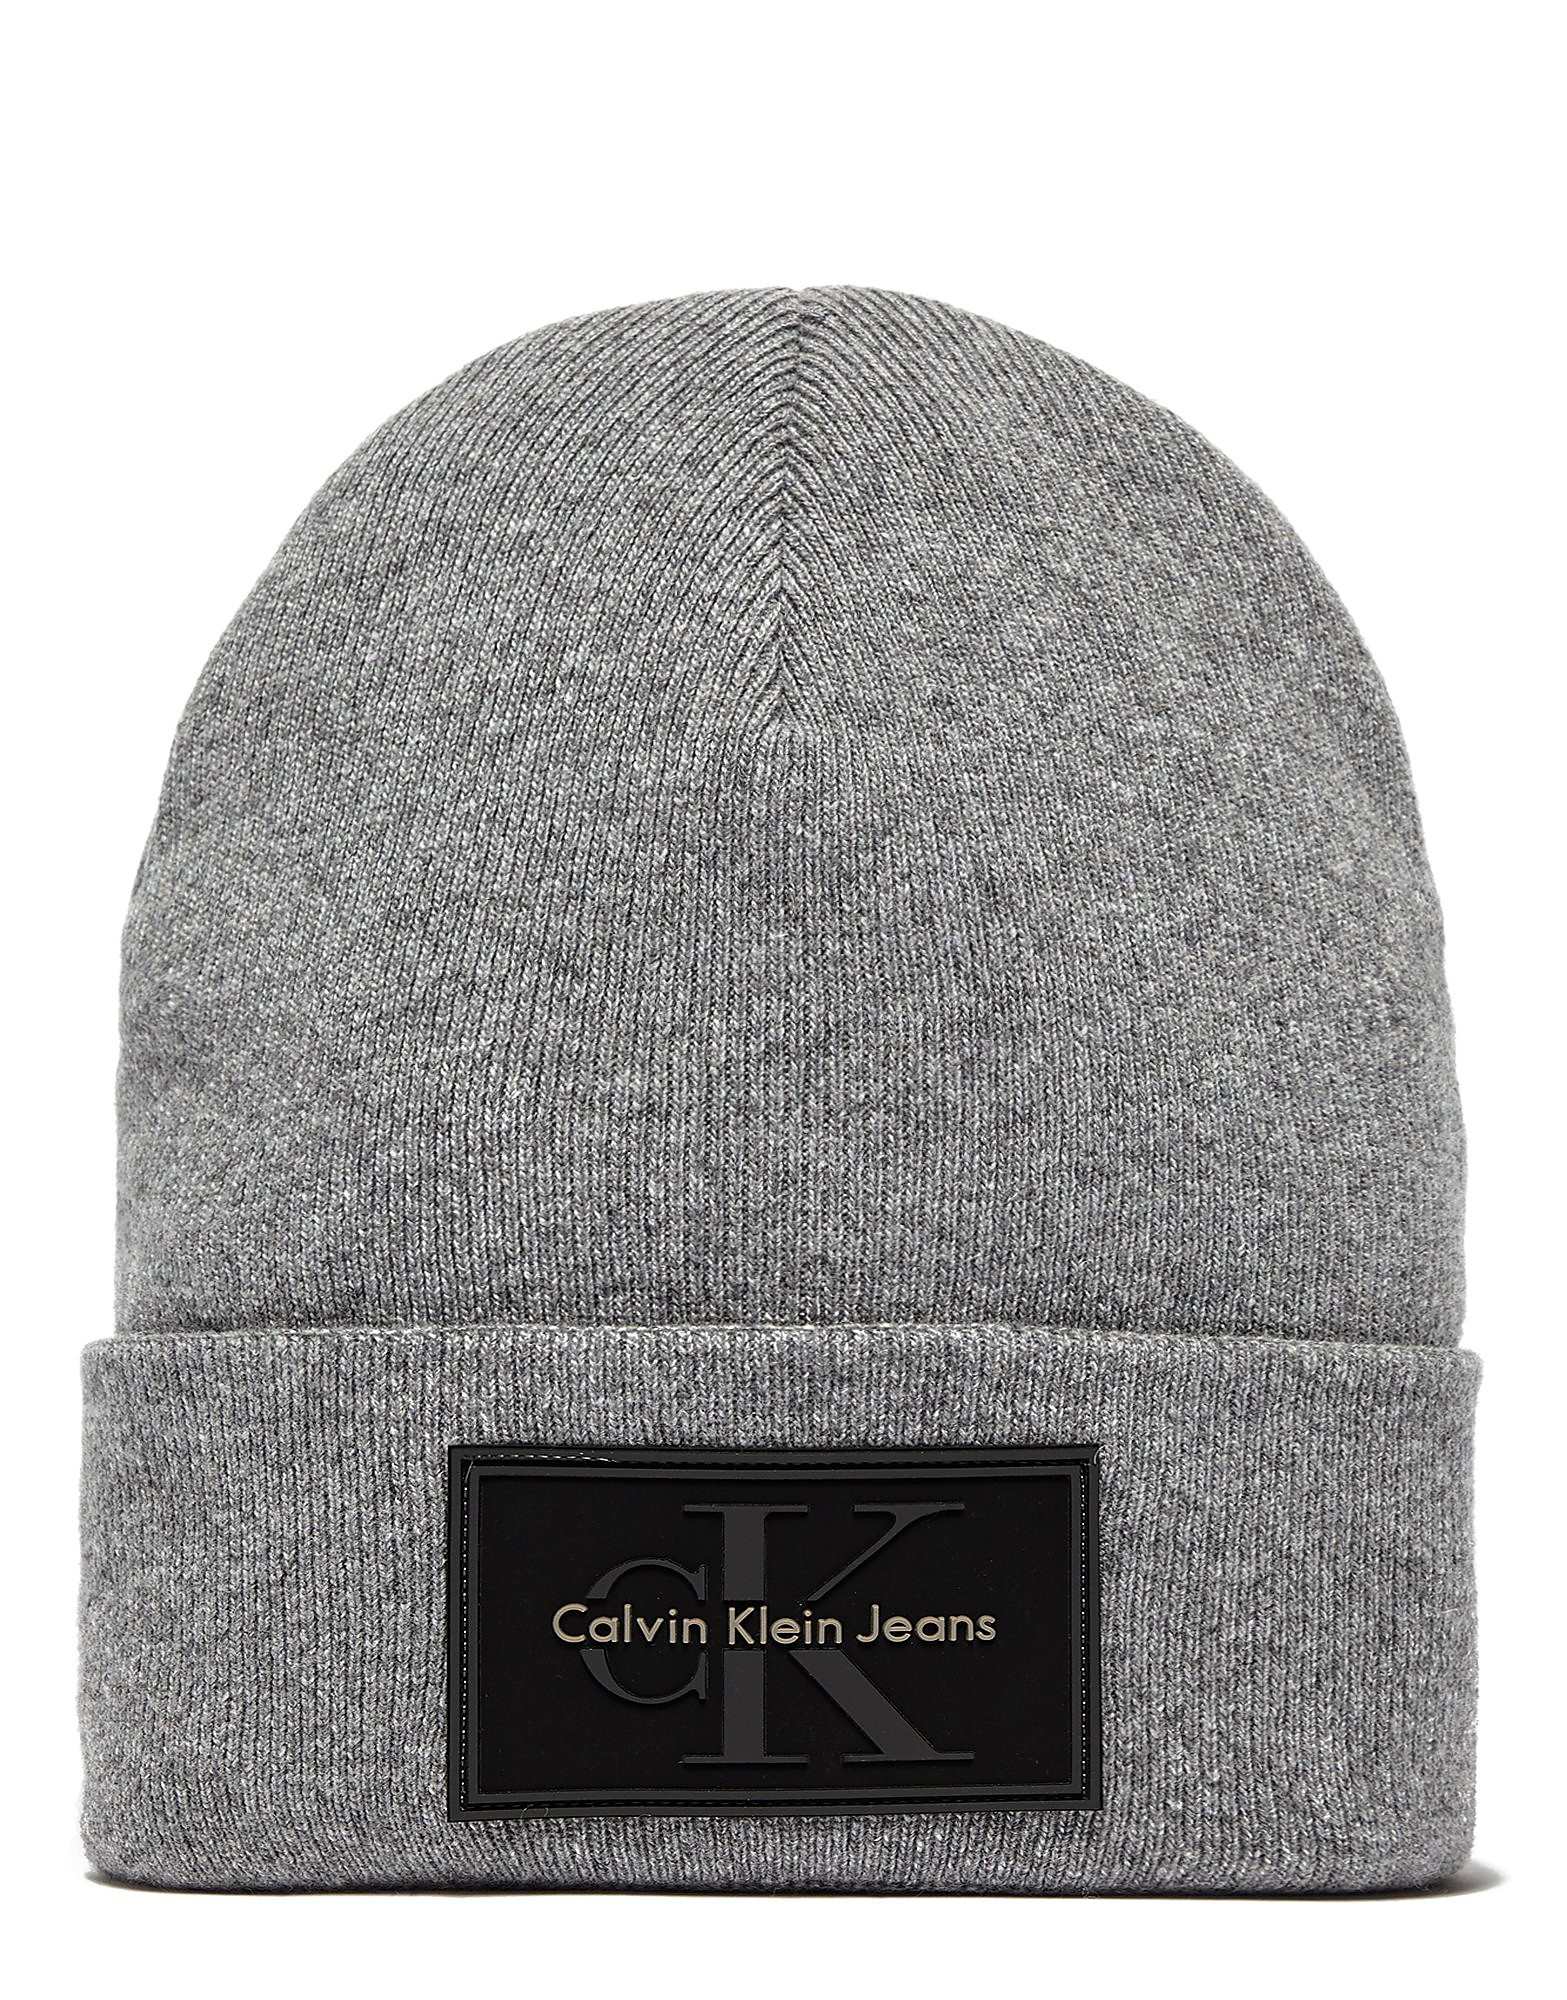 Calvin Klein gorro de lana Re-Issue